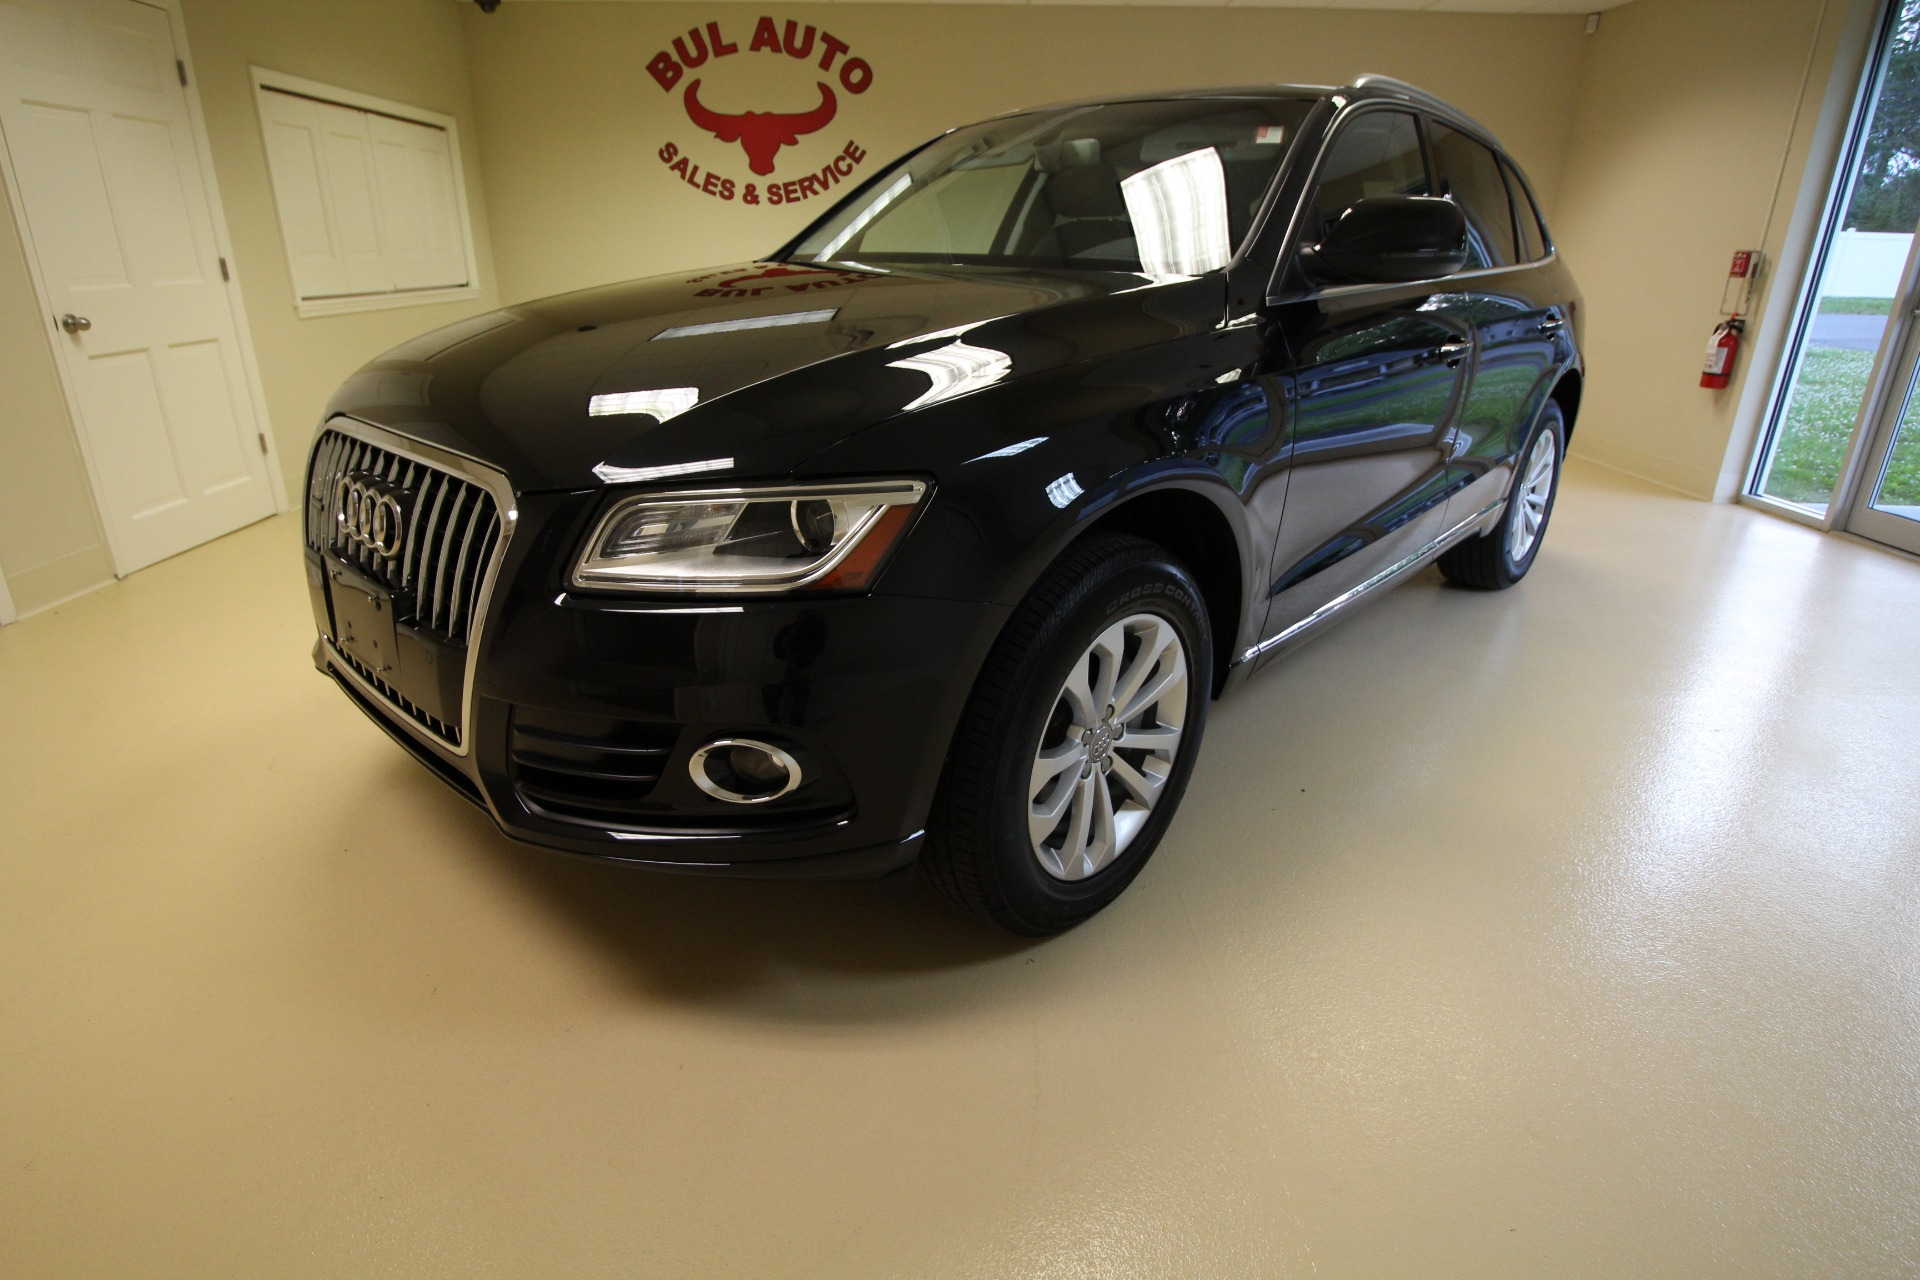 2015 audi q5 2 0t premium plus quattro stock 17127 for sale near albany ny ny audi dealer. Black Bedroom Furniture Sets. Home Design Ideas